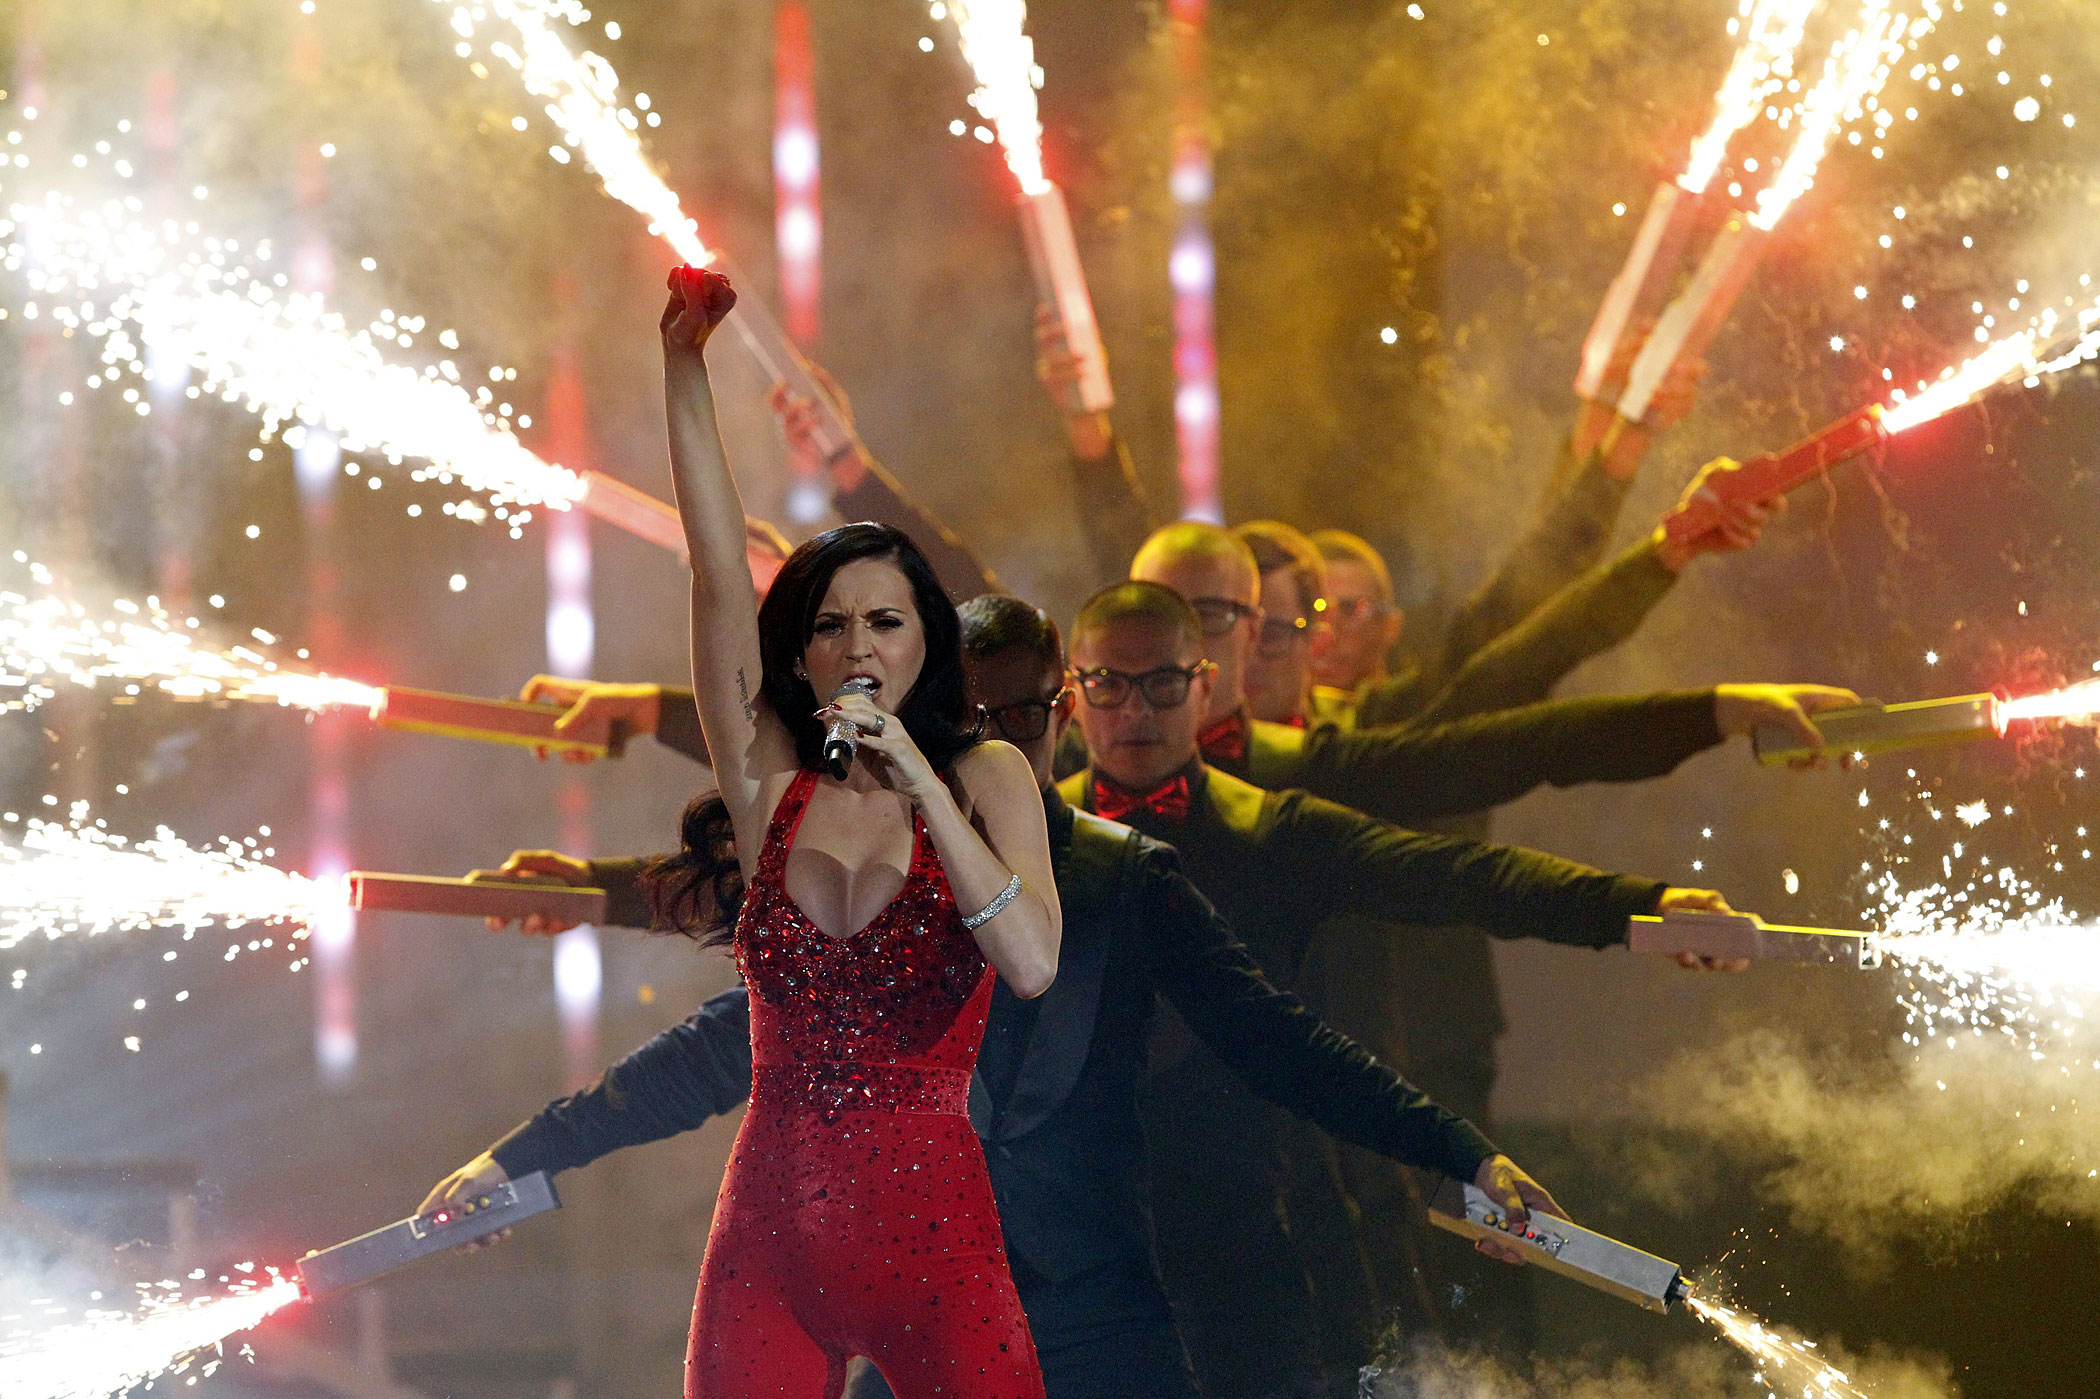 Katy Perry performs 'Firework' at the 2010 American Music Awards in Los Angeles November 21, 2010.